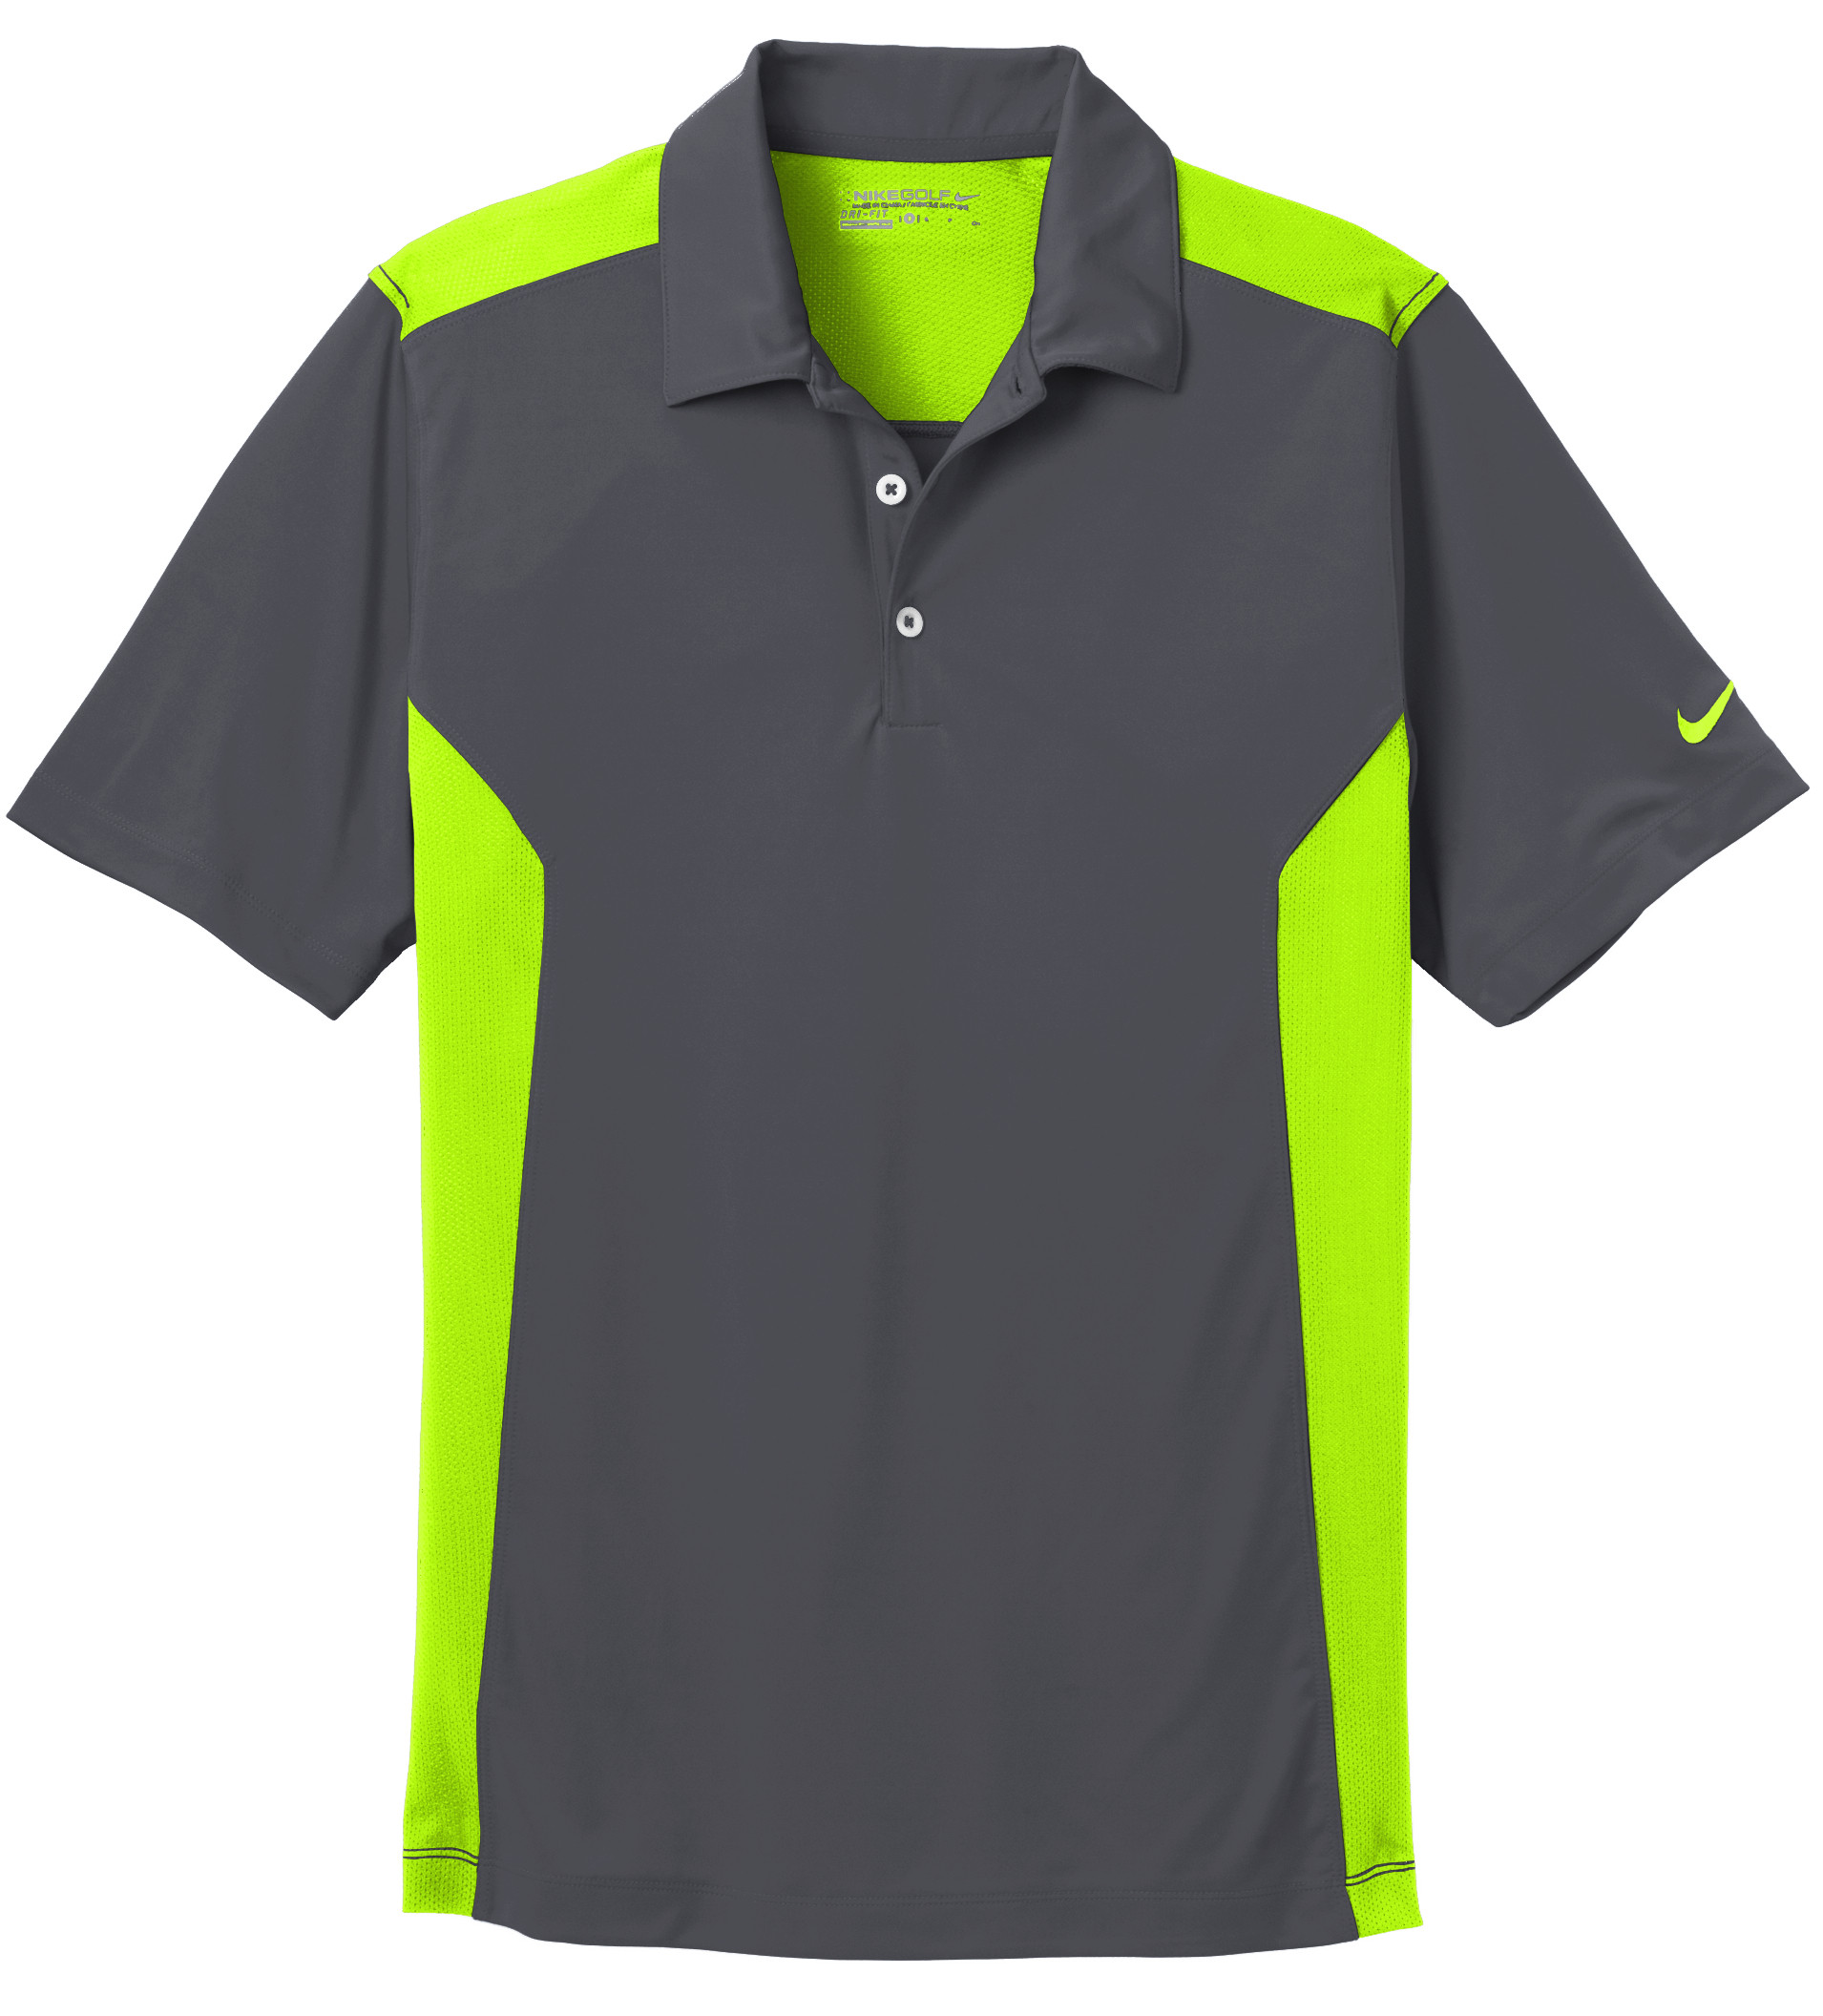 Nike performance dri fit mesh polo for Custom dry fit shirts